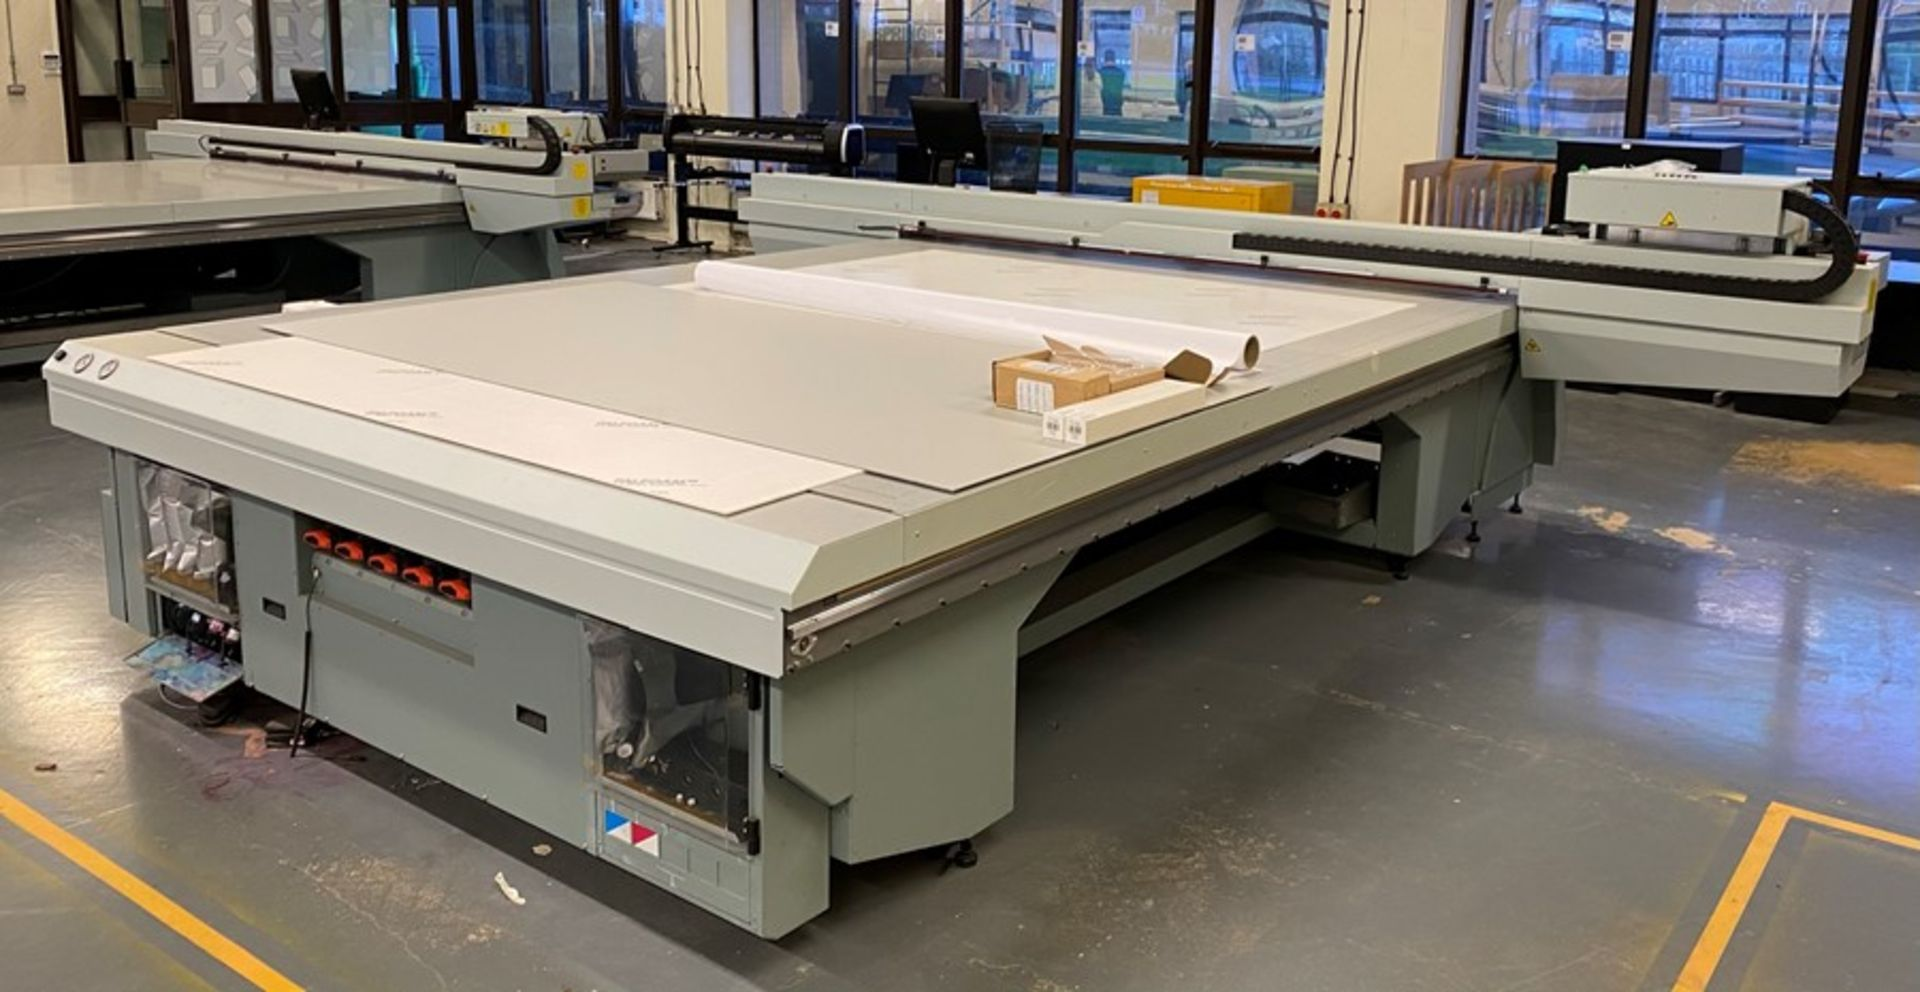 Oce Arizona 660 XT UV flatbed printer (2015) - Image 16 of 22